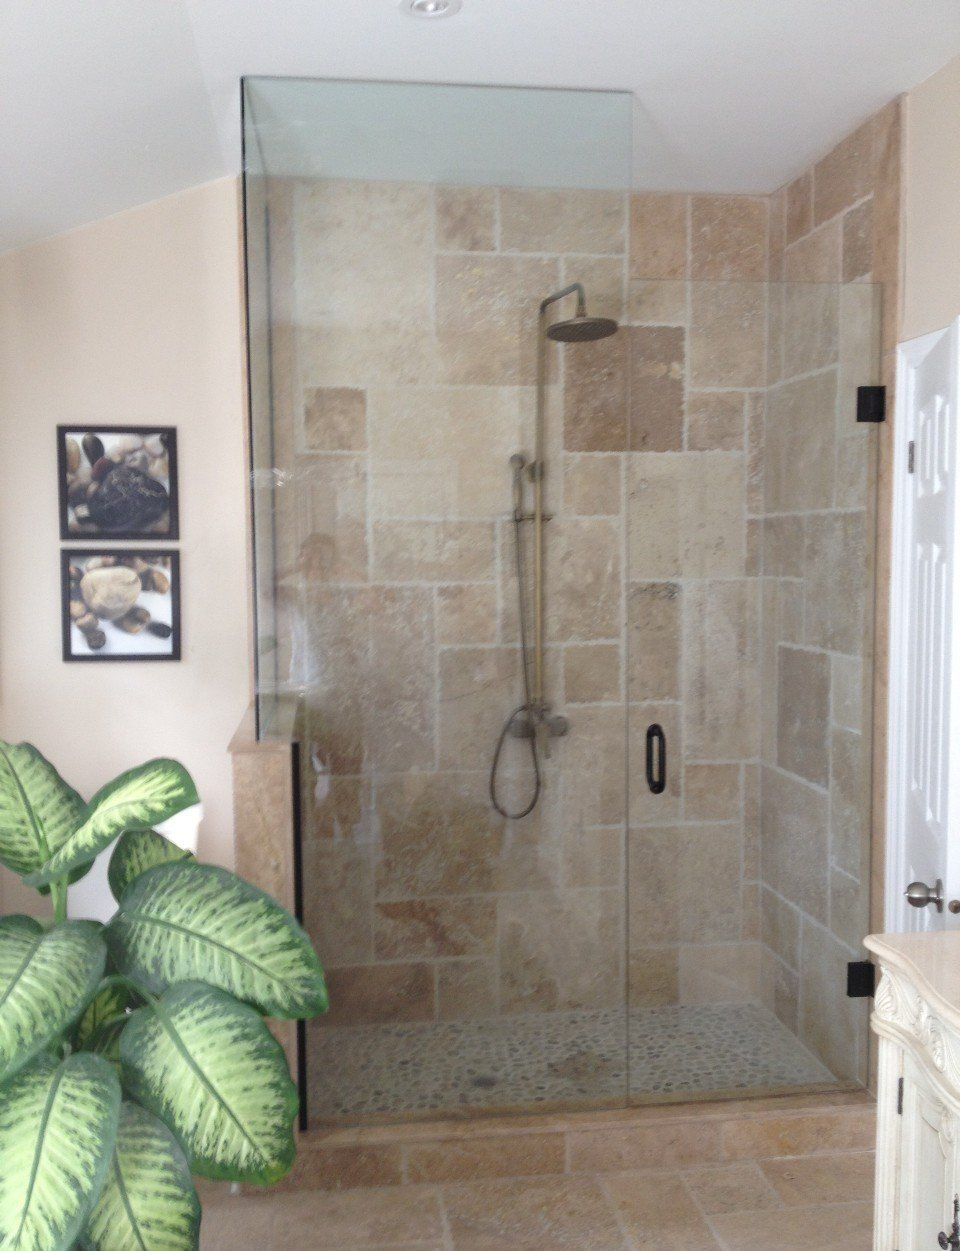 Lowe's Glass Walk In Shower Designs  Bathroom Shower Design Delectable Small Bathroom Walk In Shower Designs Review